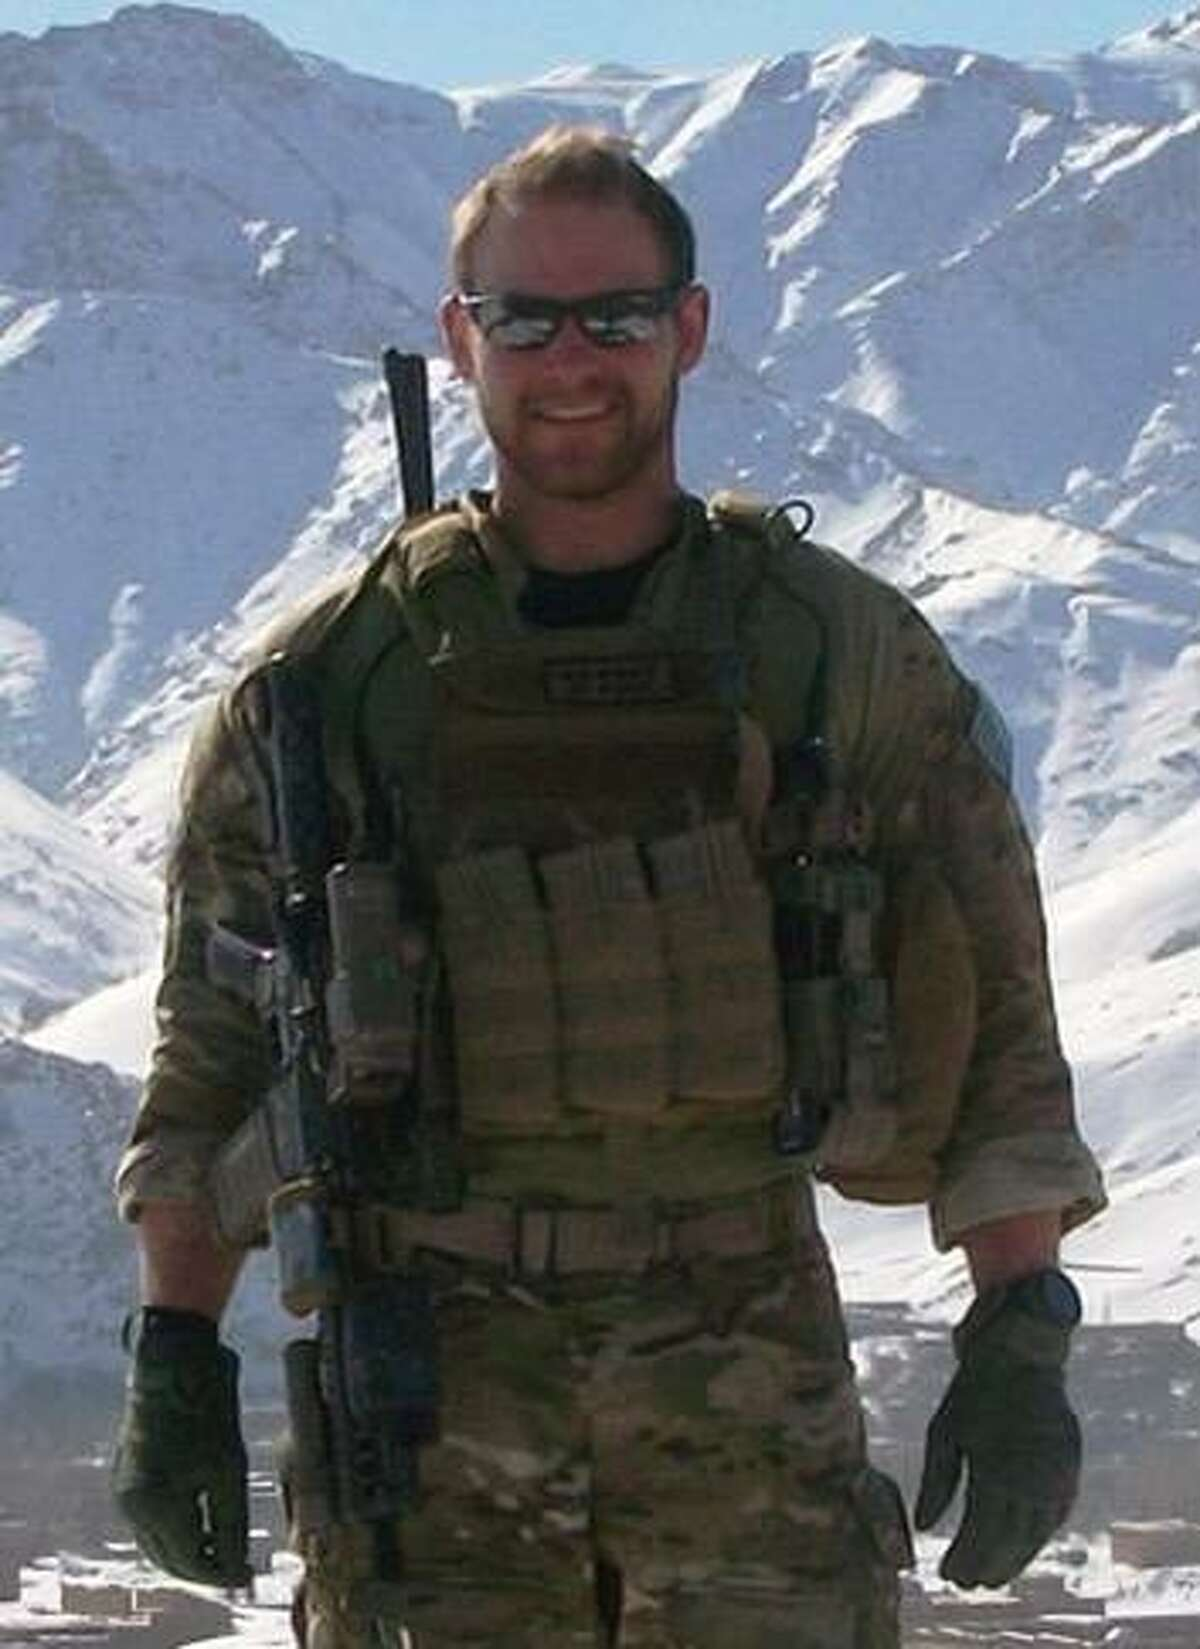 Army Capt. Andrew M. Pedersen-Keel, who grew up in Wallingford, was killed in 2013 while serving in Afghanistan.